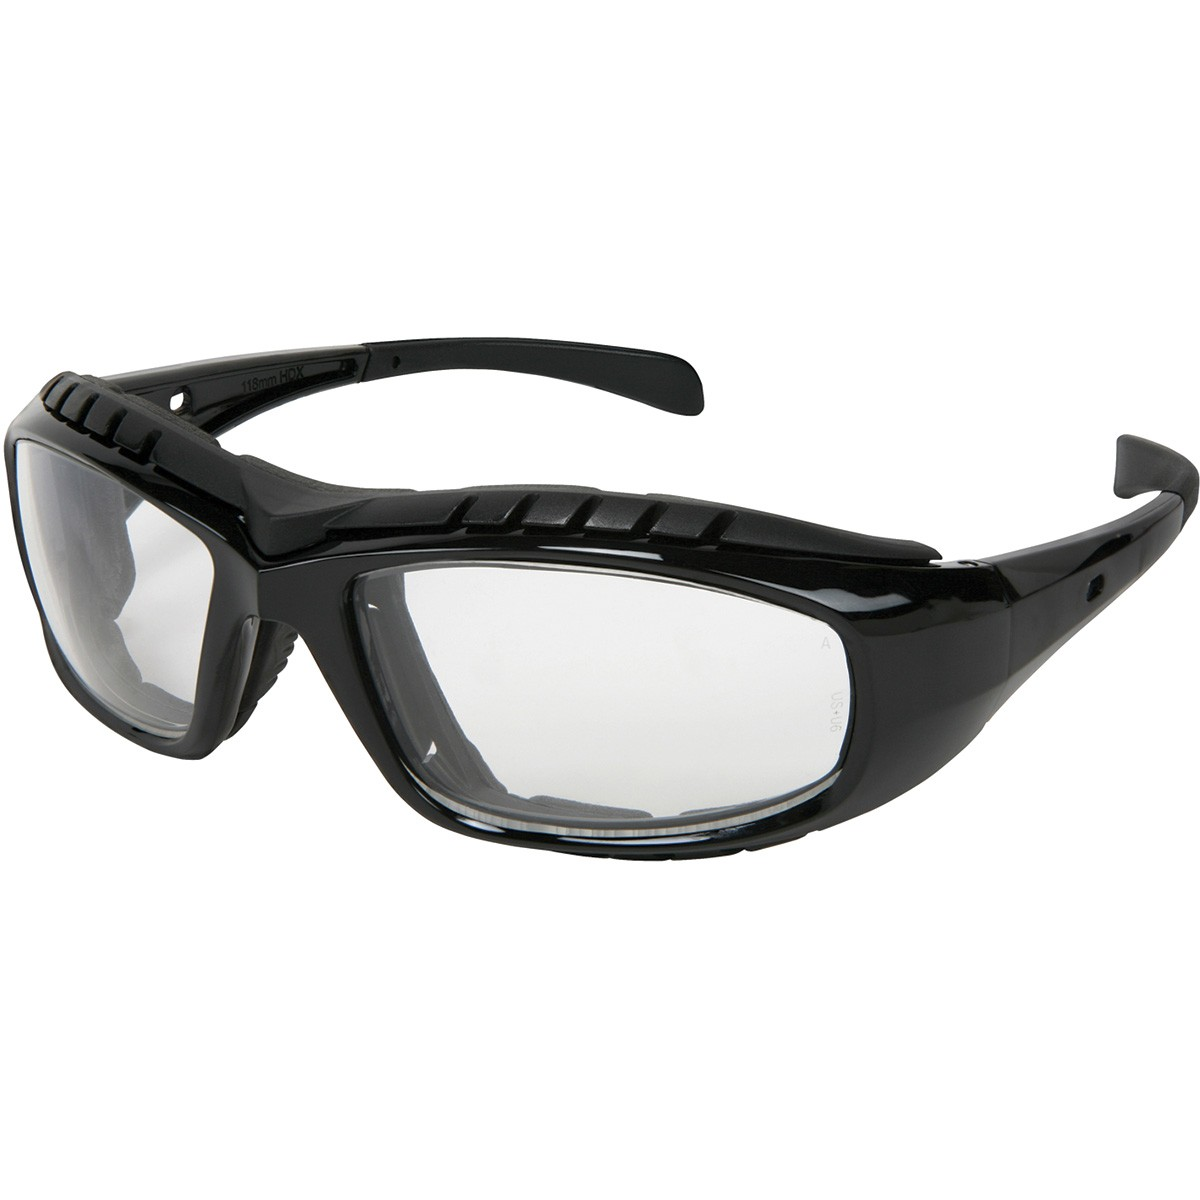 HDX1 Series, Clear anti-fog lens, removable strap, replaceable foam insert-MCR Safety